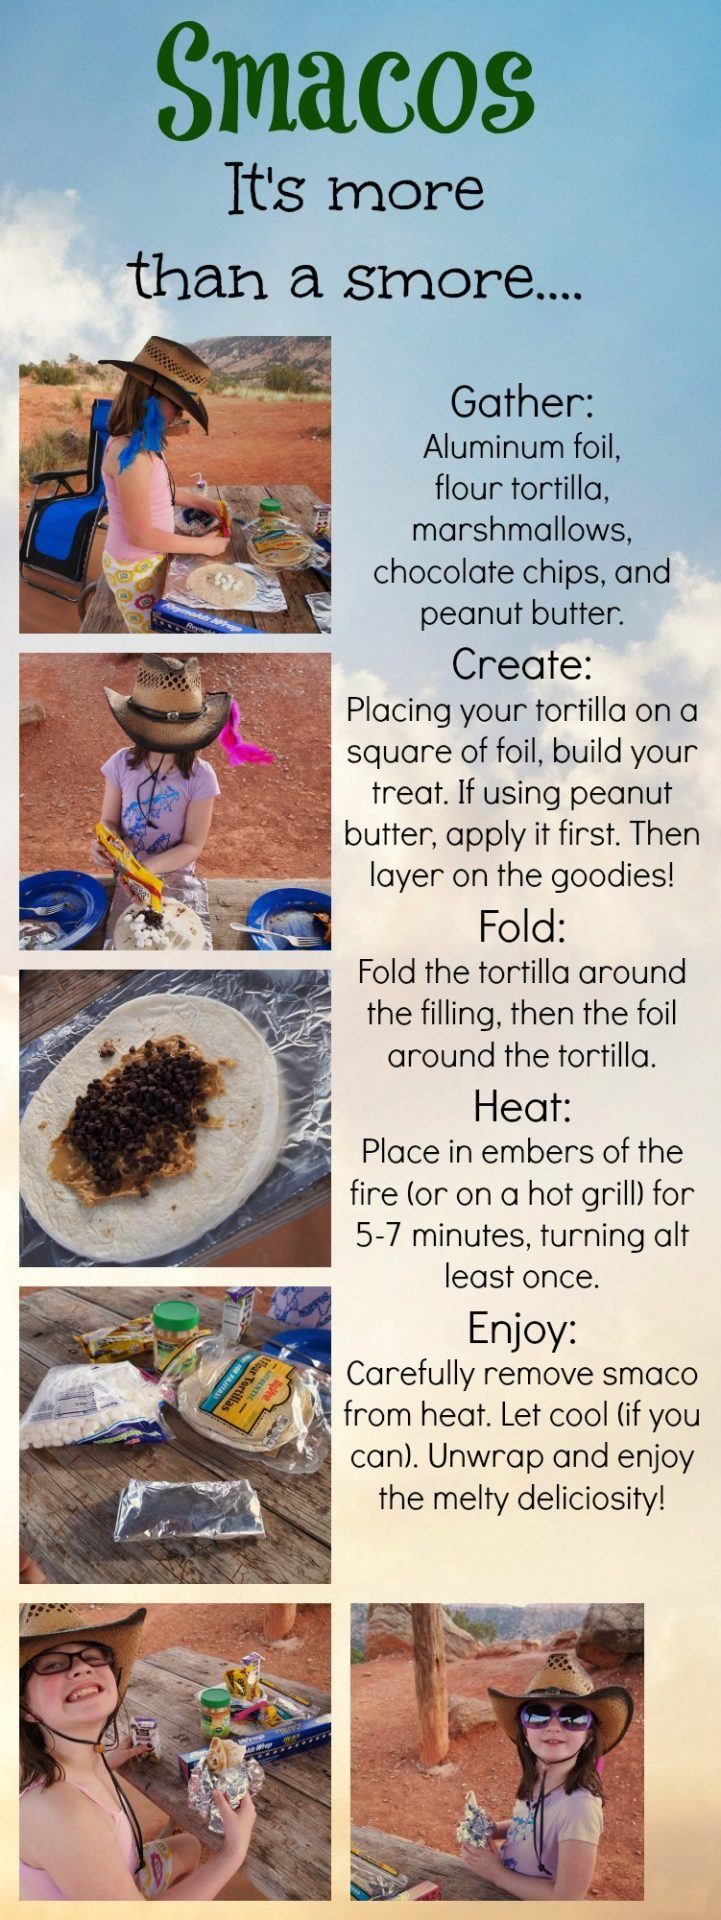 Family Camping Tips and Tricks + Our Favorite Campfire Treat